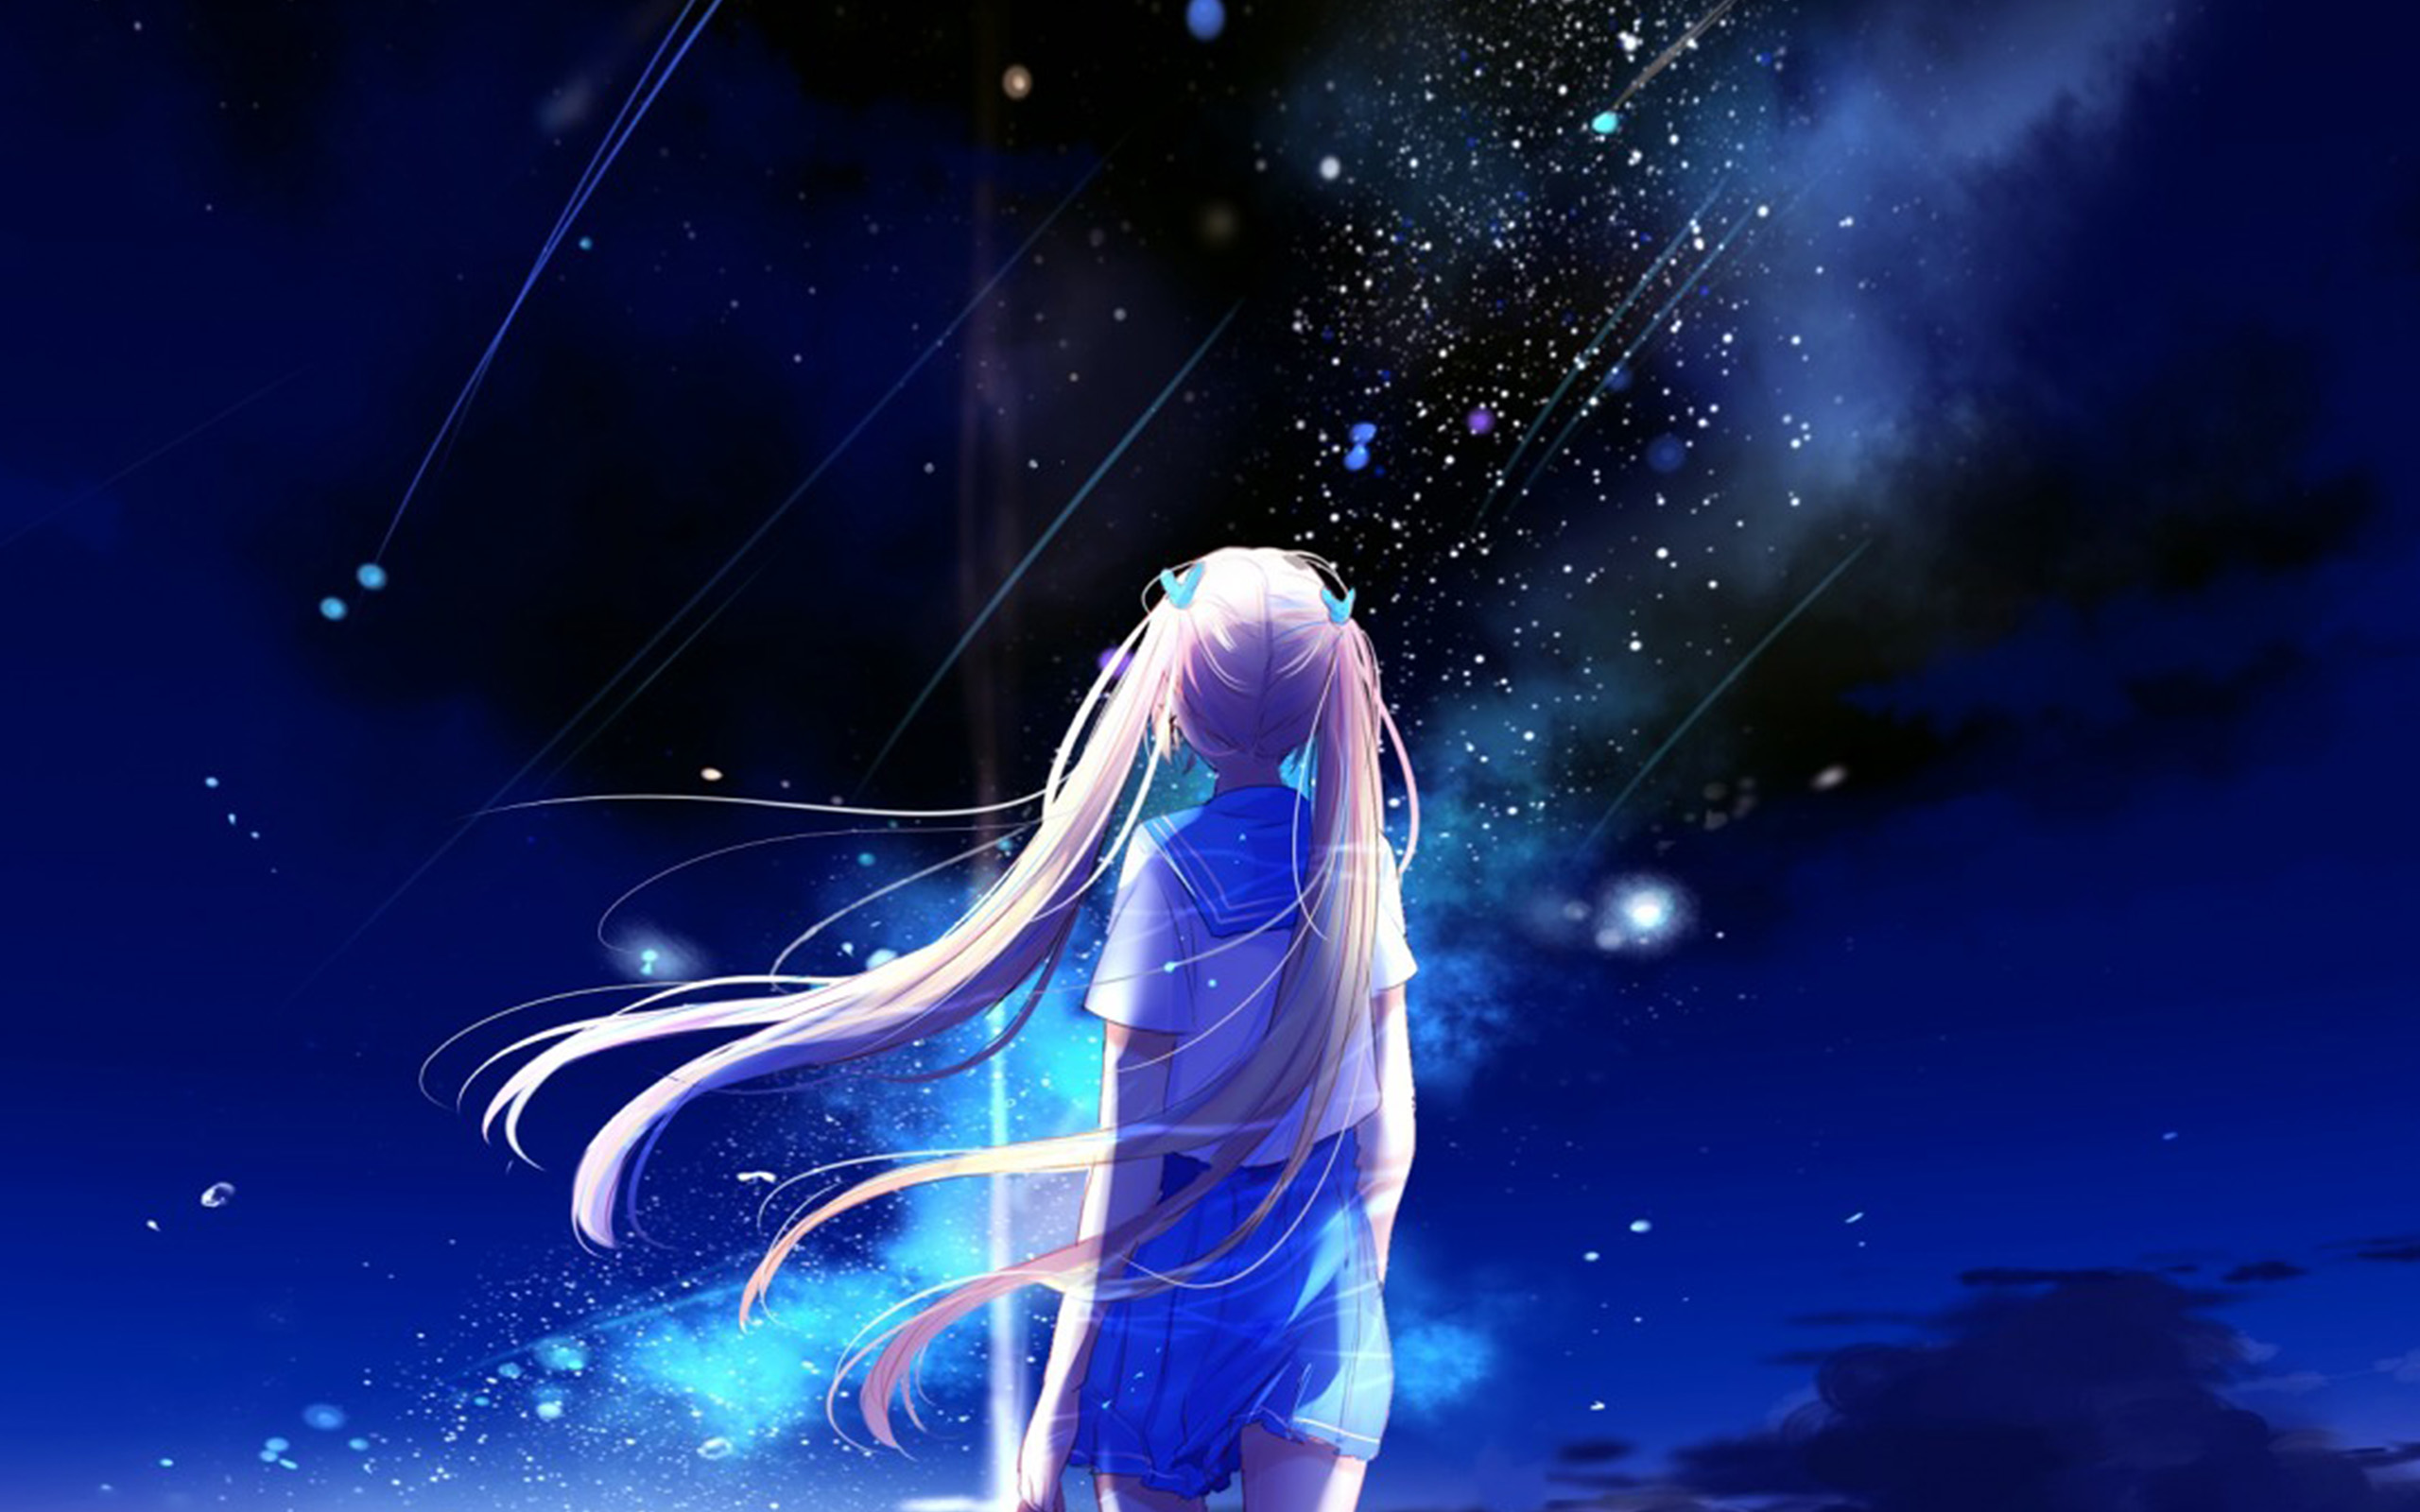 Anime Wallpaper Hd For Iphone: Bc64-anime-night-space-star-art-illustration-wallpaper